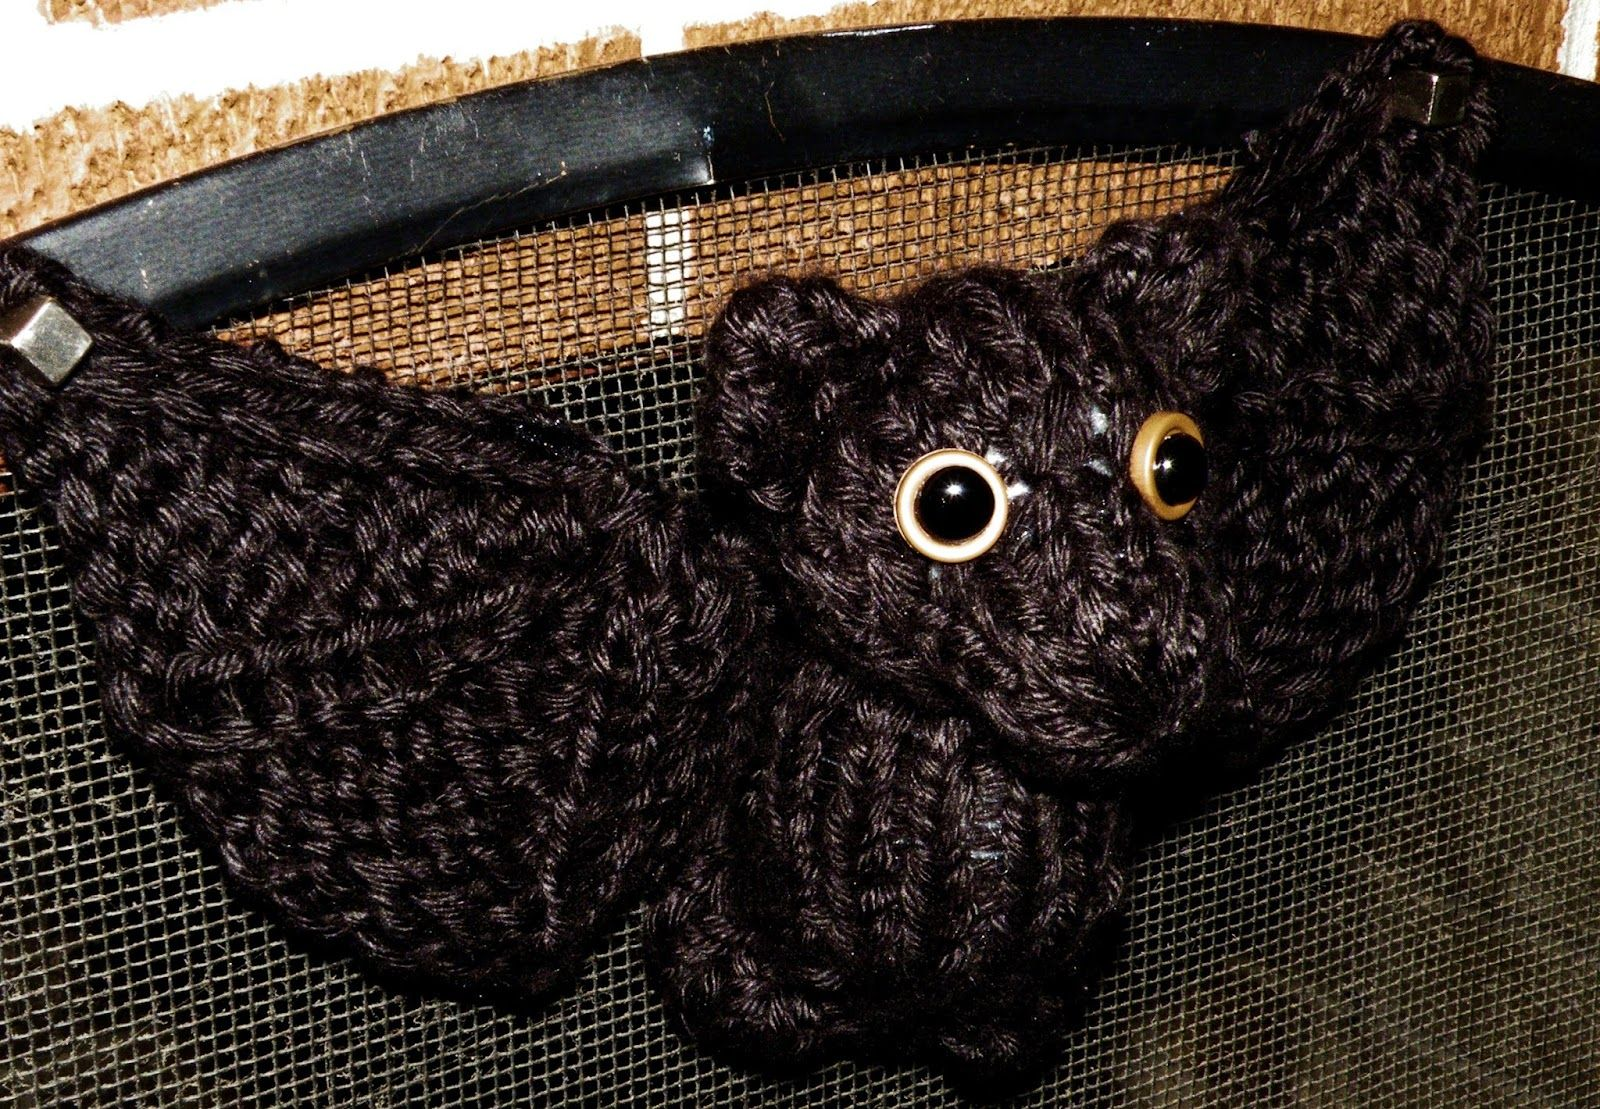 Hook Knitting Patterns : The loom muse creations and ideas: how to knit a bat